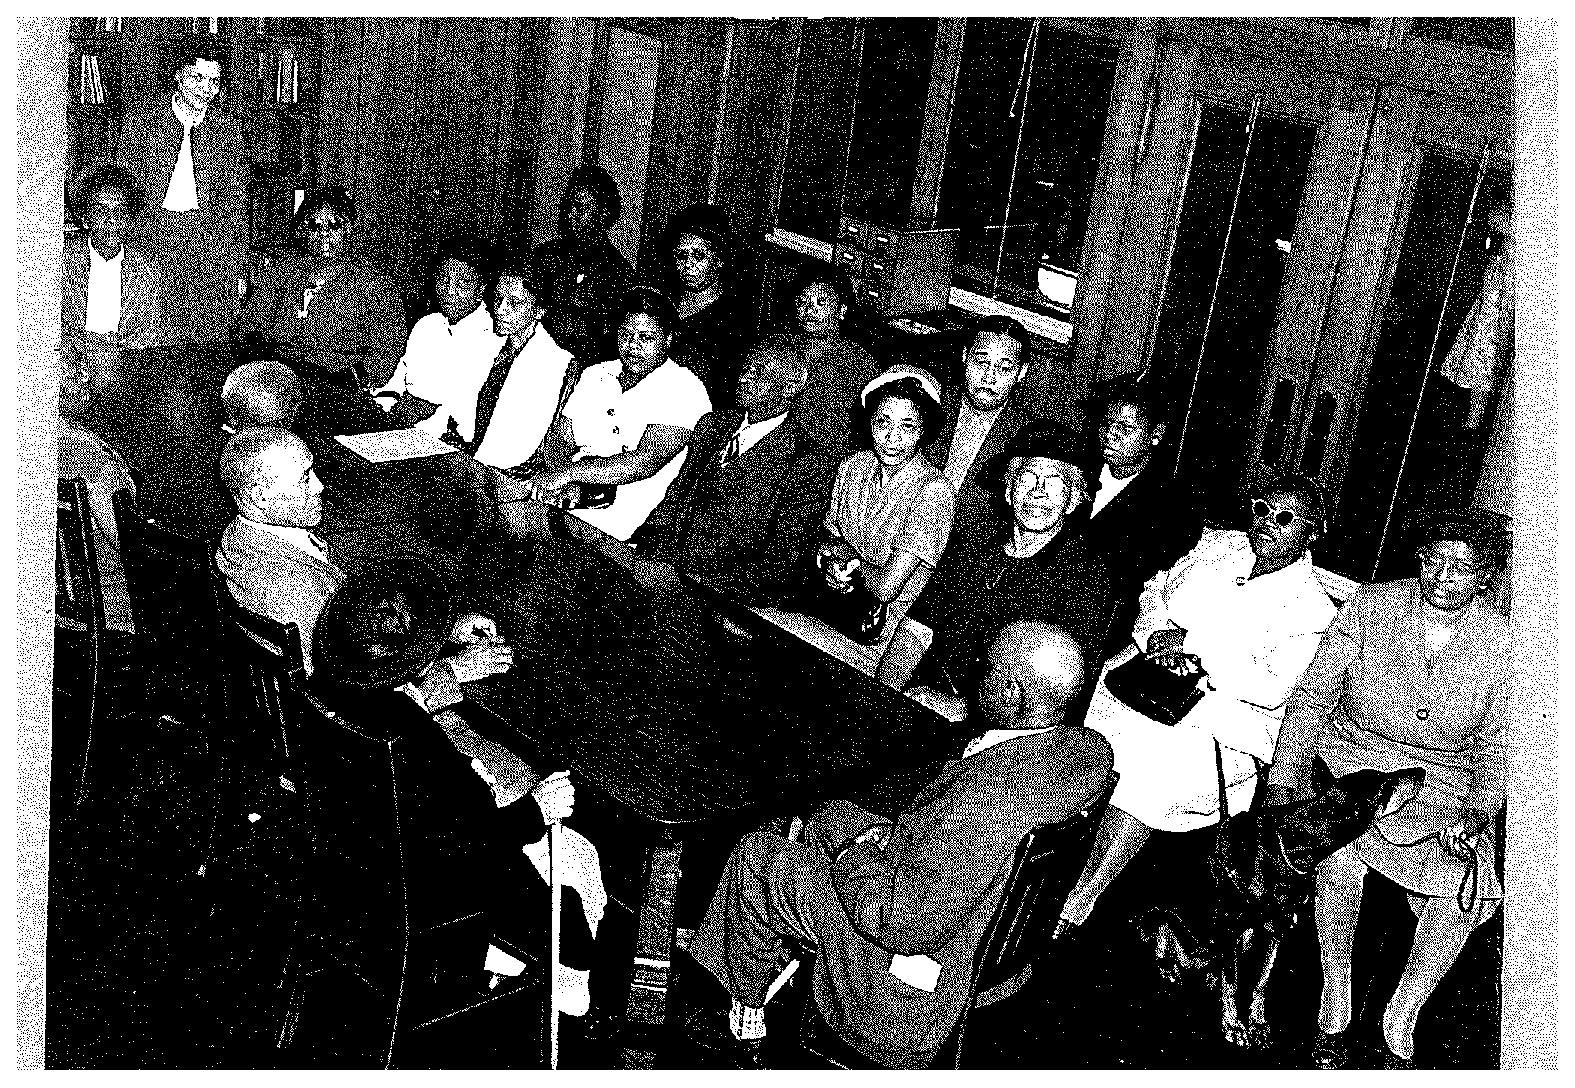 Society of the Blind Book Club 1952 (courtesy of Sterling Library)